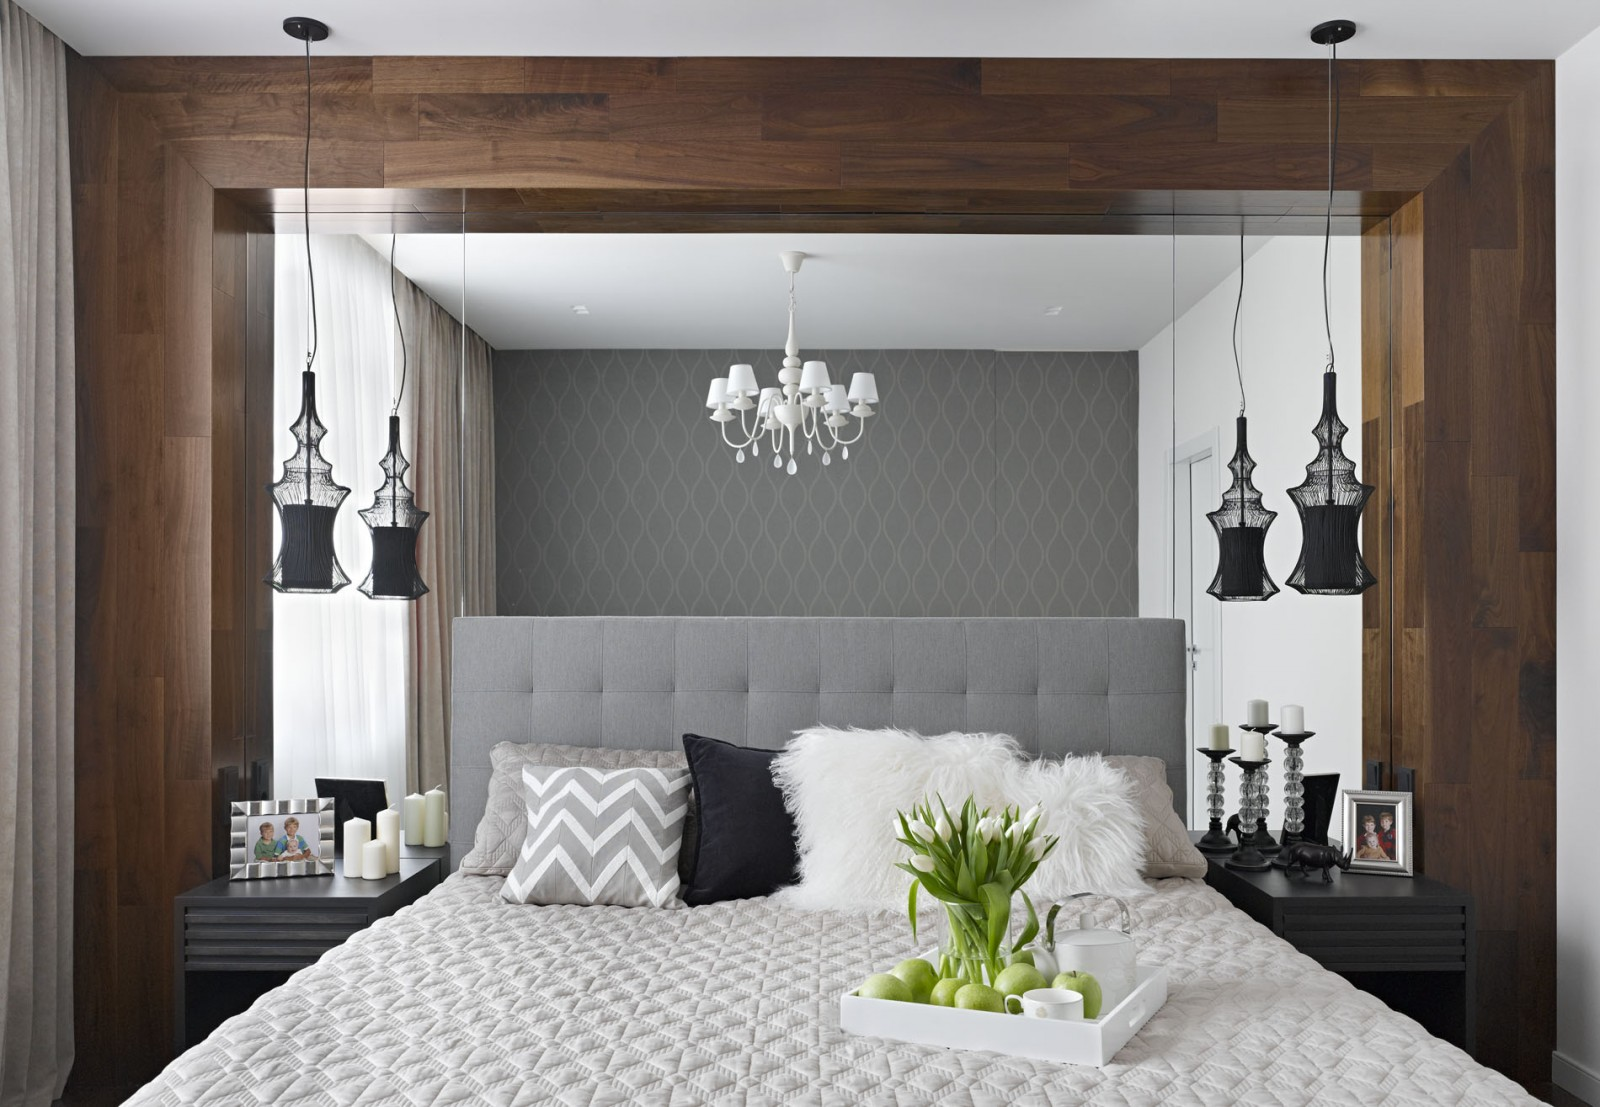 20 Small Bedroom Ideas That Will Leave You Speechless